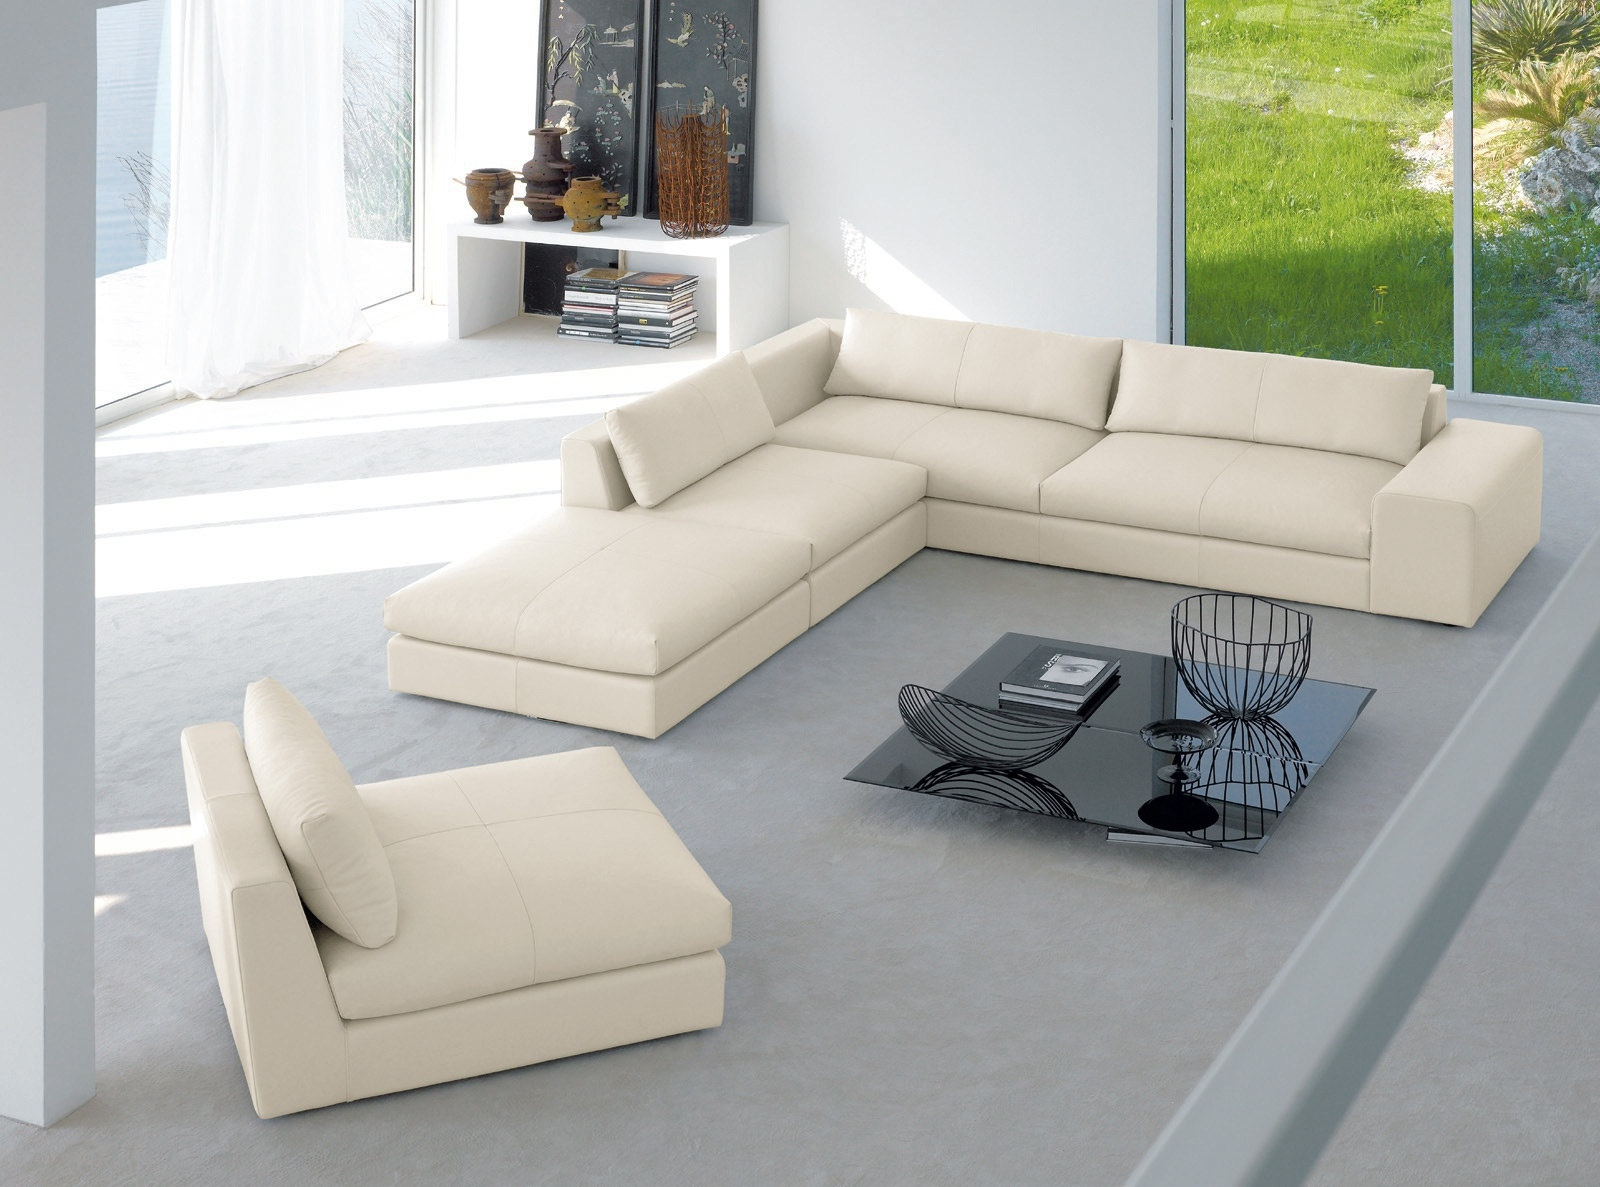 Modular Sofa Newport Alberta Salotti Luxury Furniture Mr Regarding Newport Sofas (Image 4 of 15)